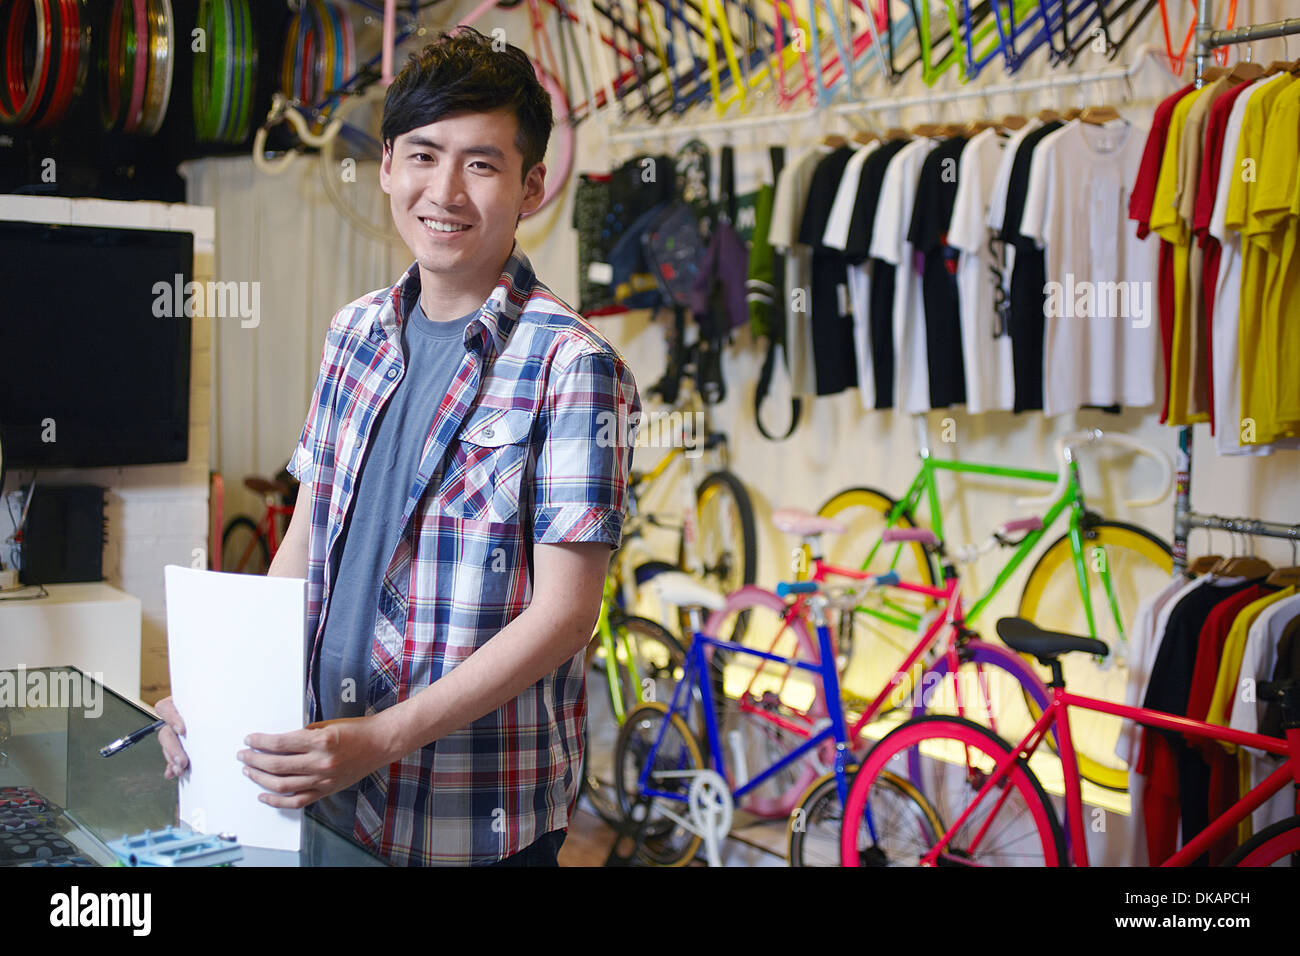 Young man in bike shop holding paperwork - Stock Image